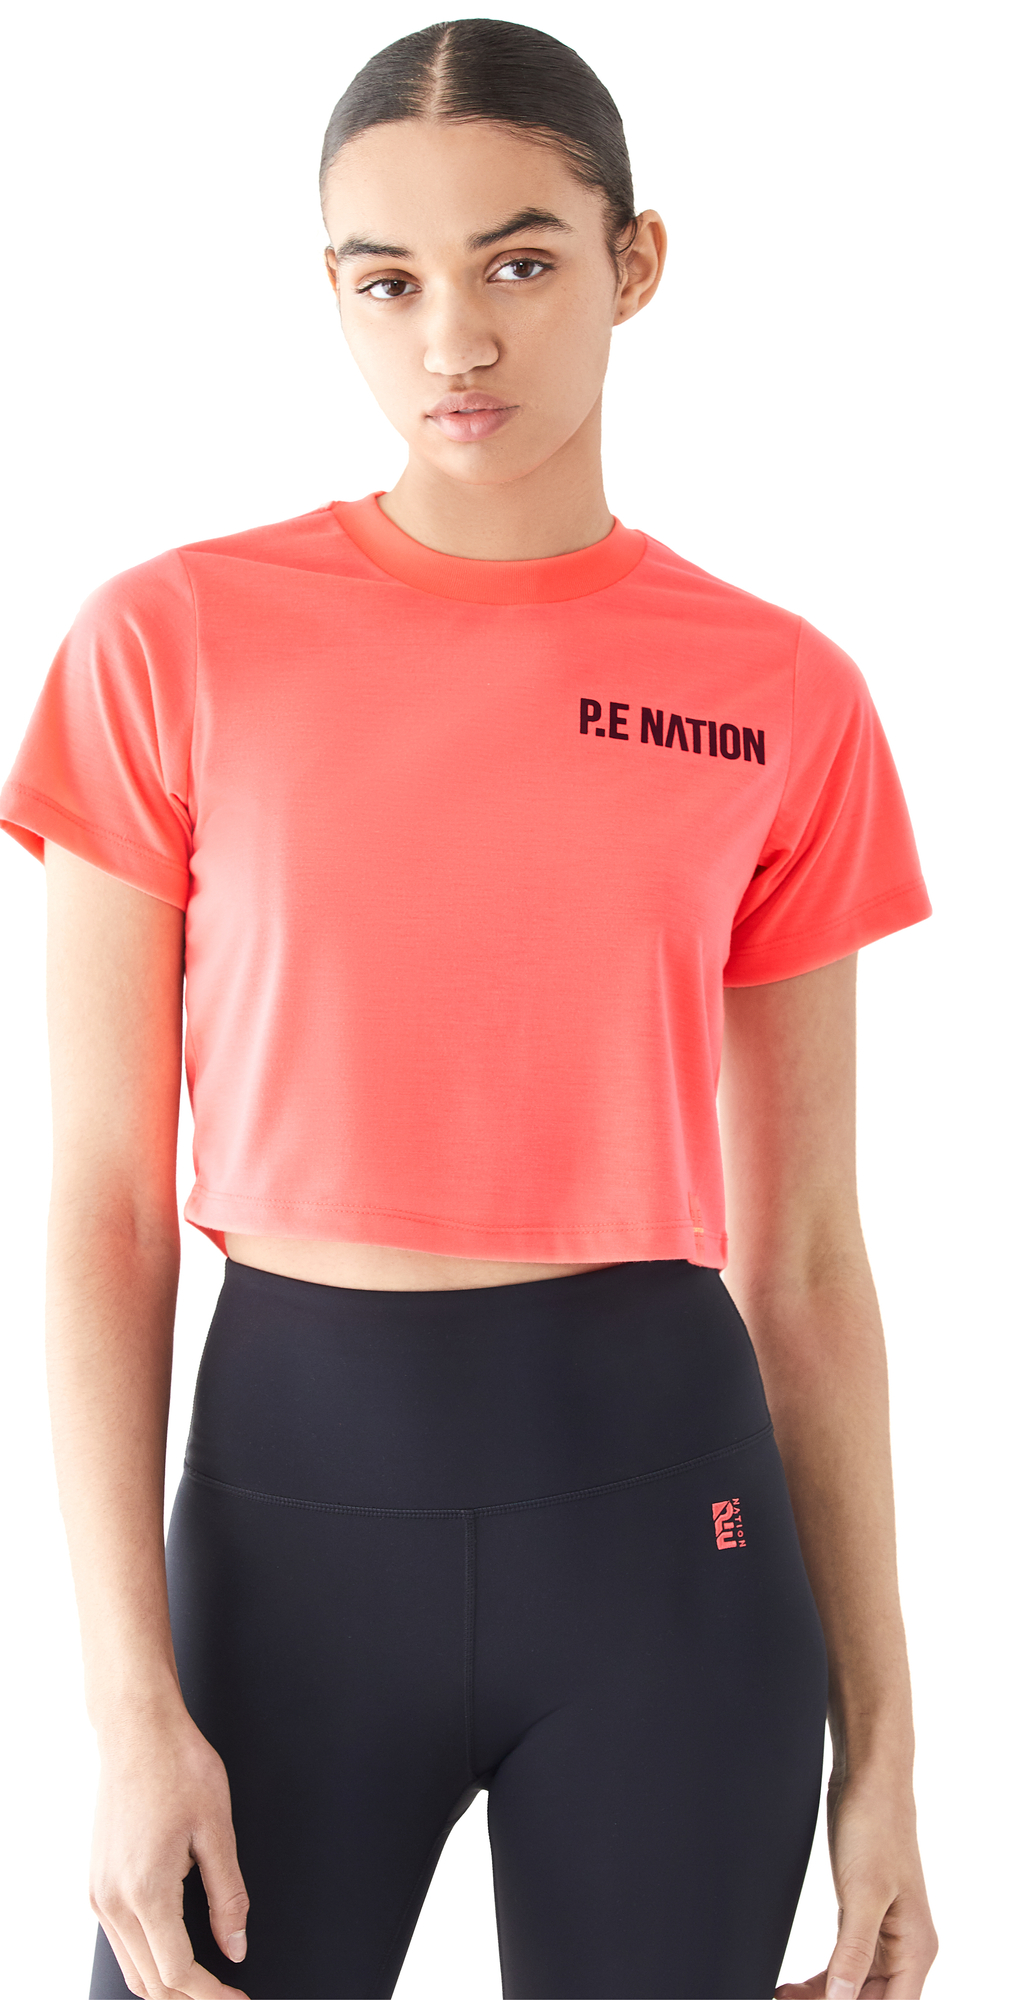 P.E NATION Box Out Tee